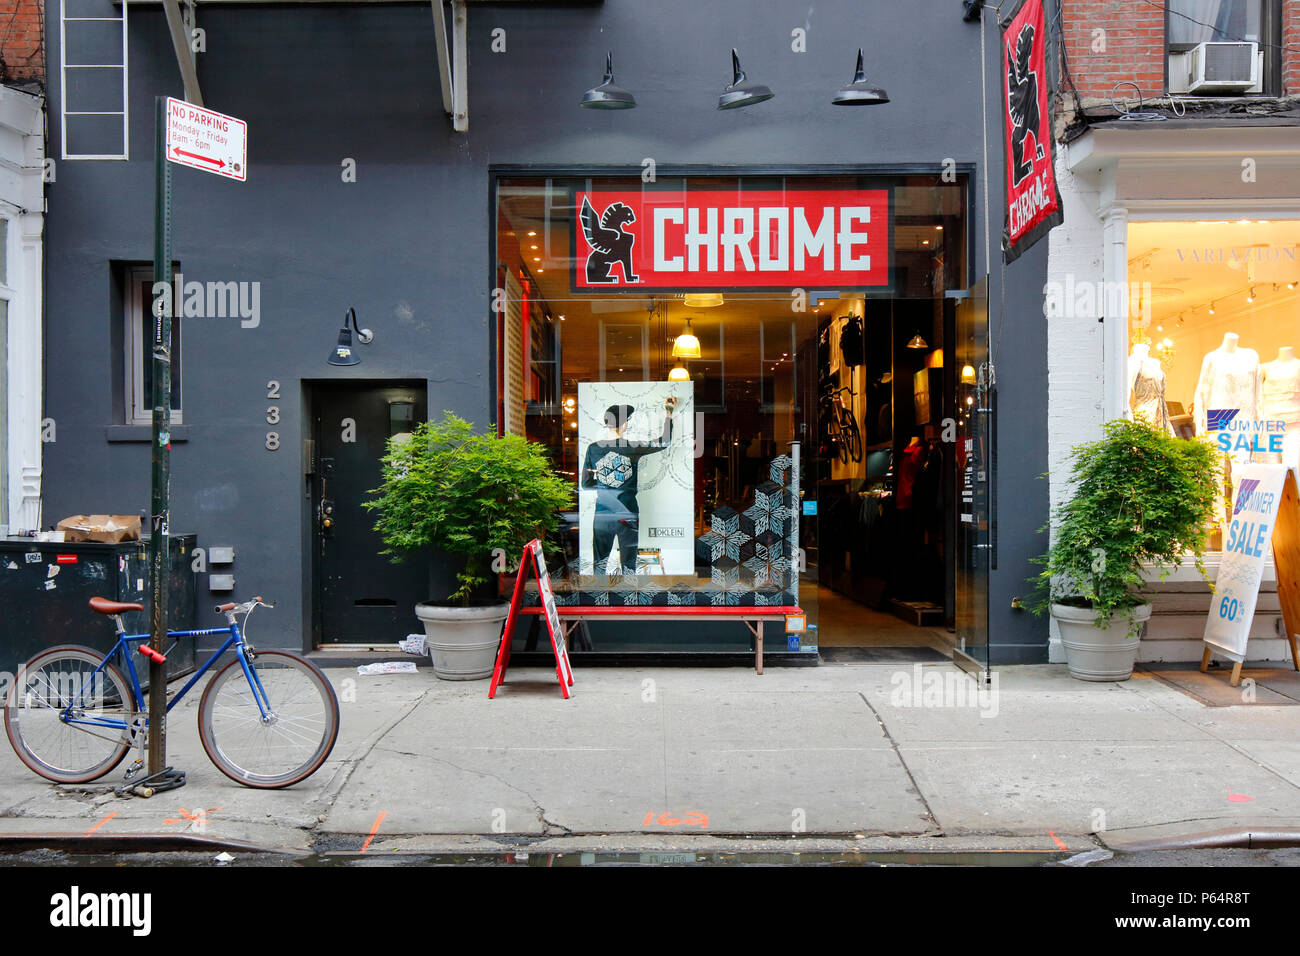 Chrome Industries, 238 Mulberry St, New York, NY - Stock Image